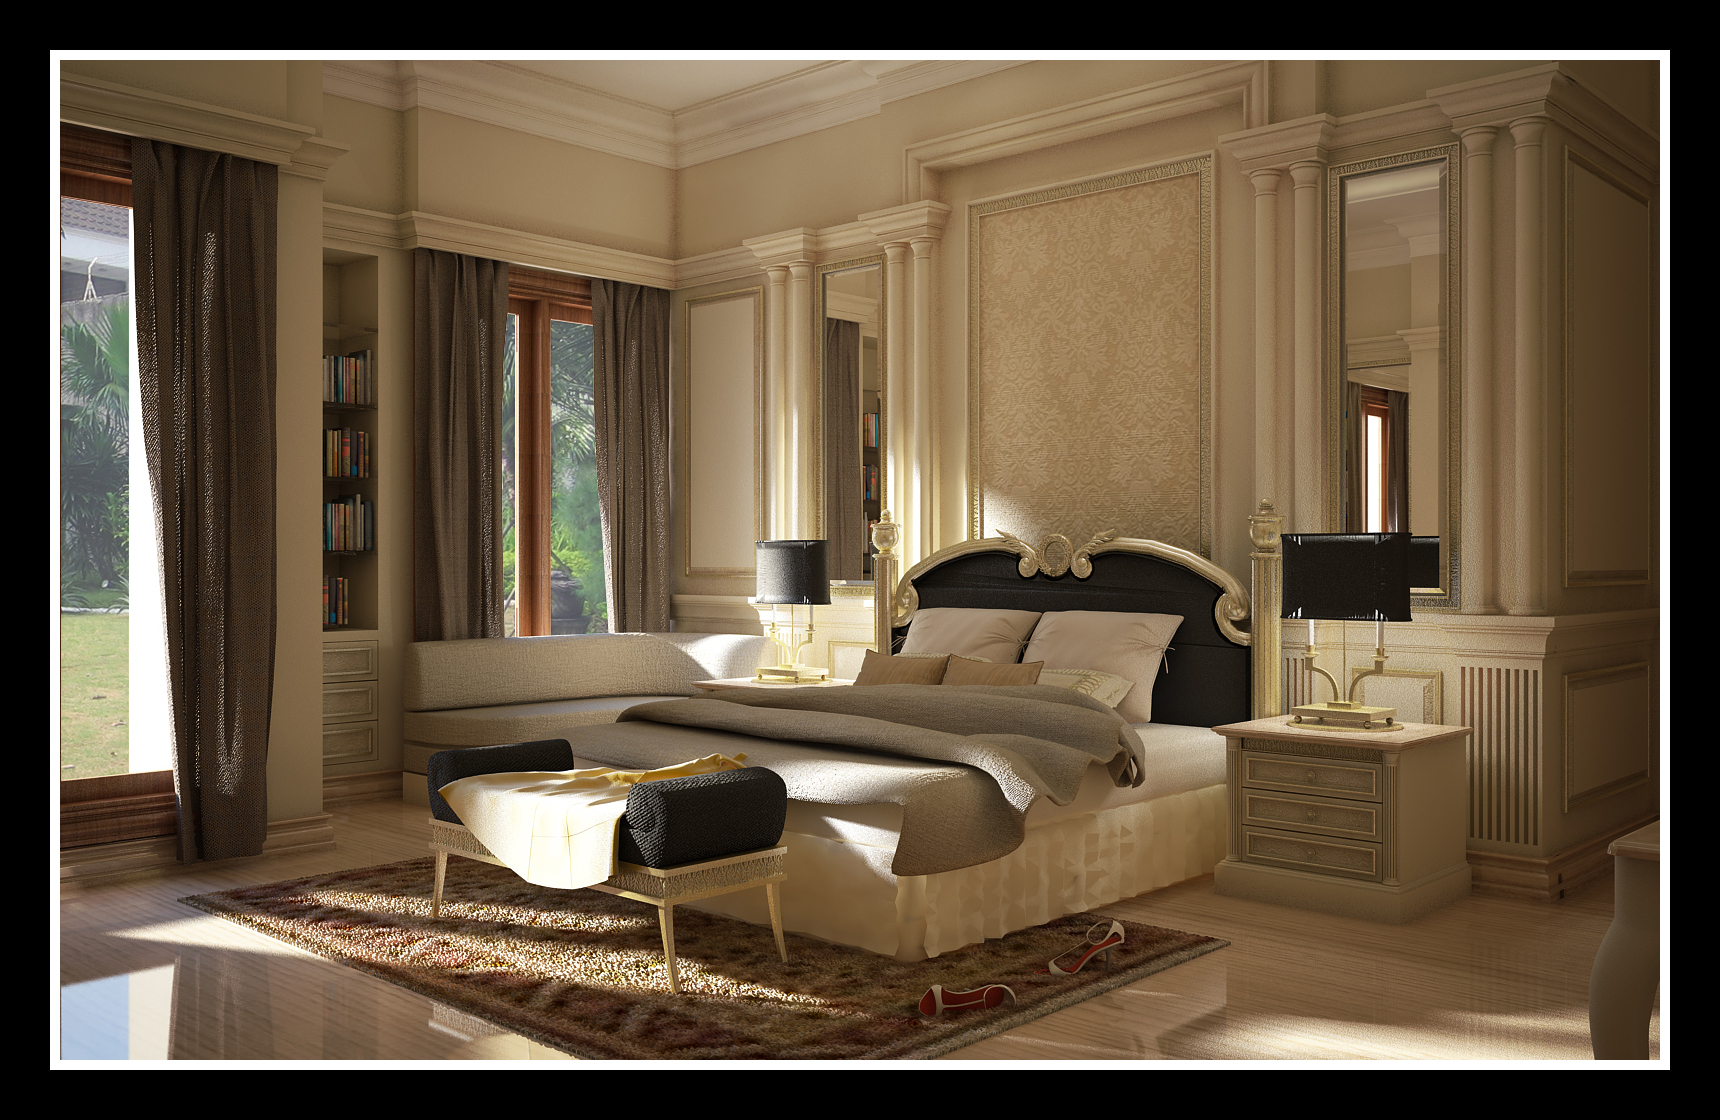 Interior design 3d home designer - Interior bedroom decoration ...